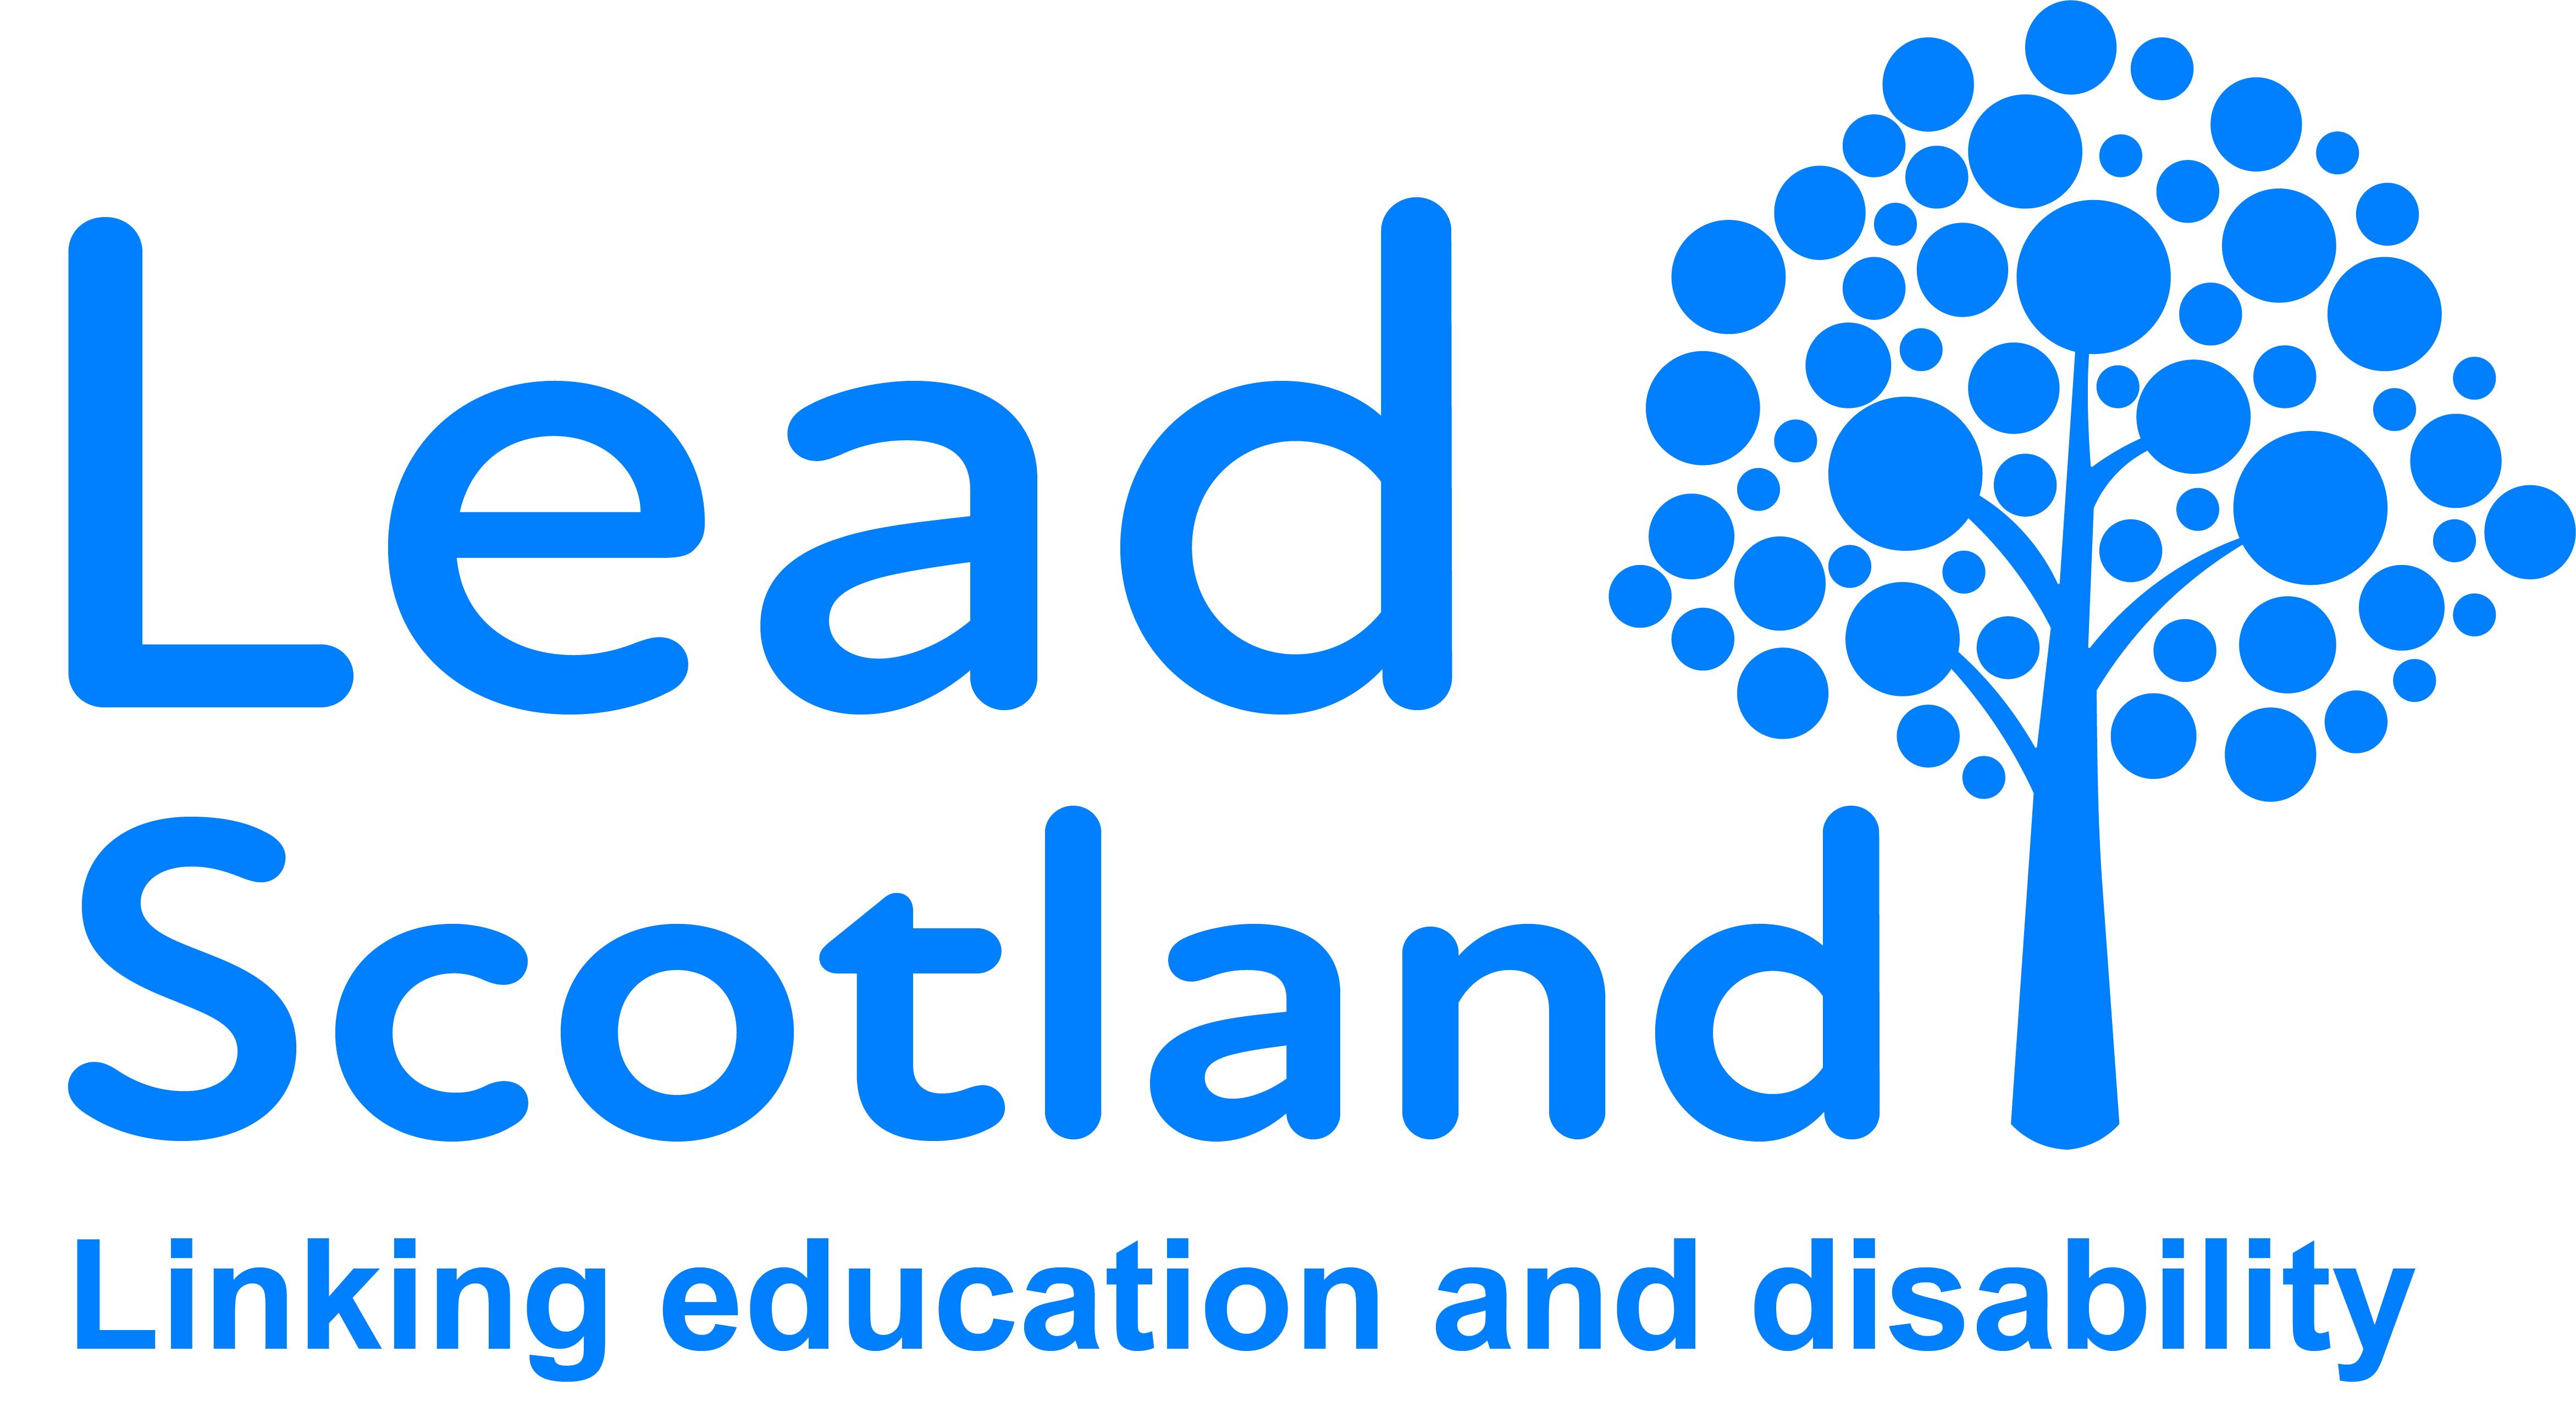 LEAD Scotland - Specialists in Linking Education and Disability